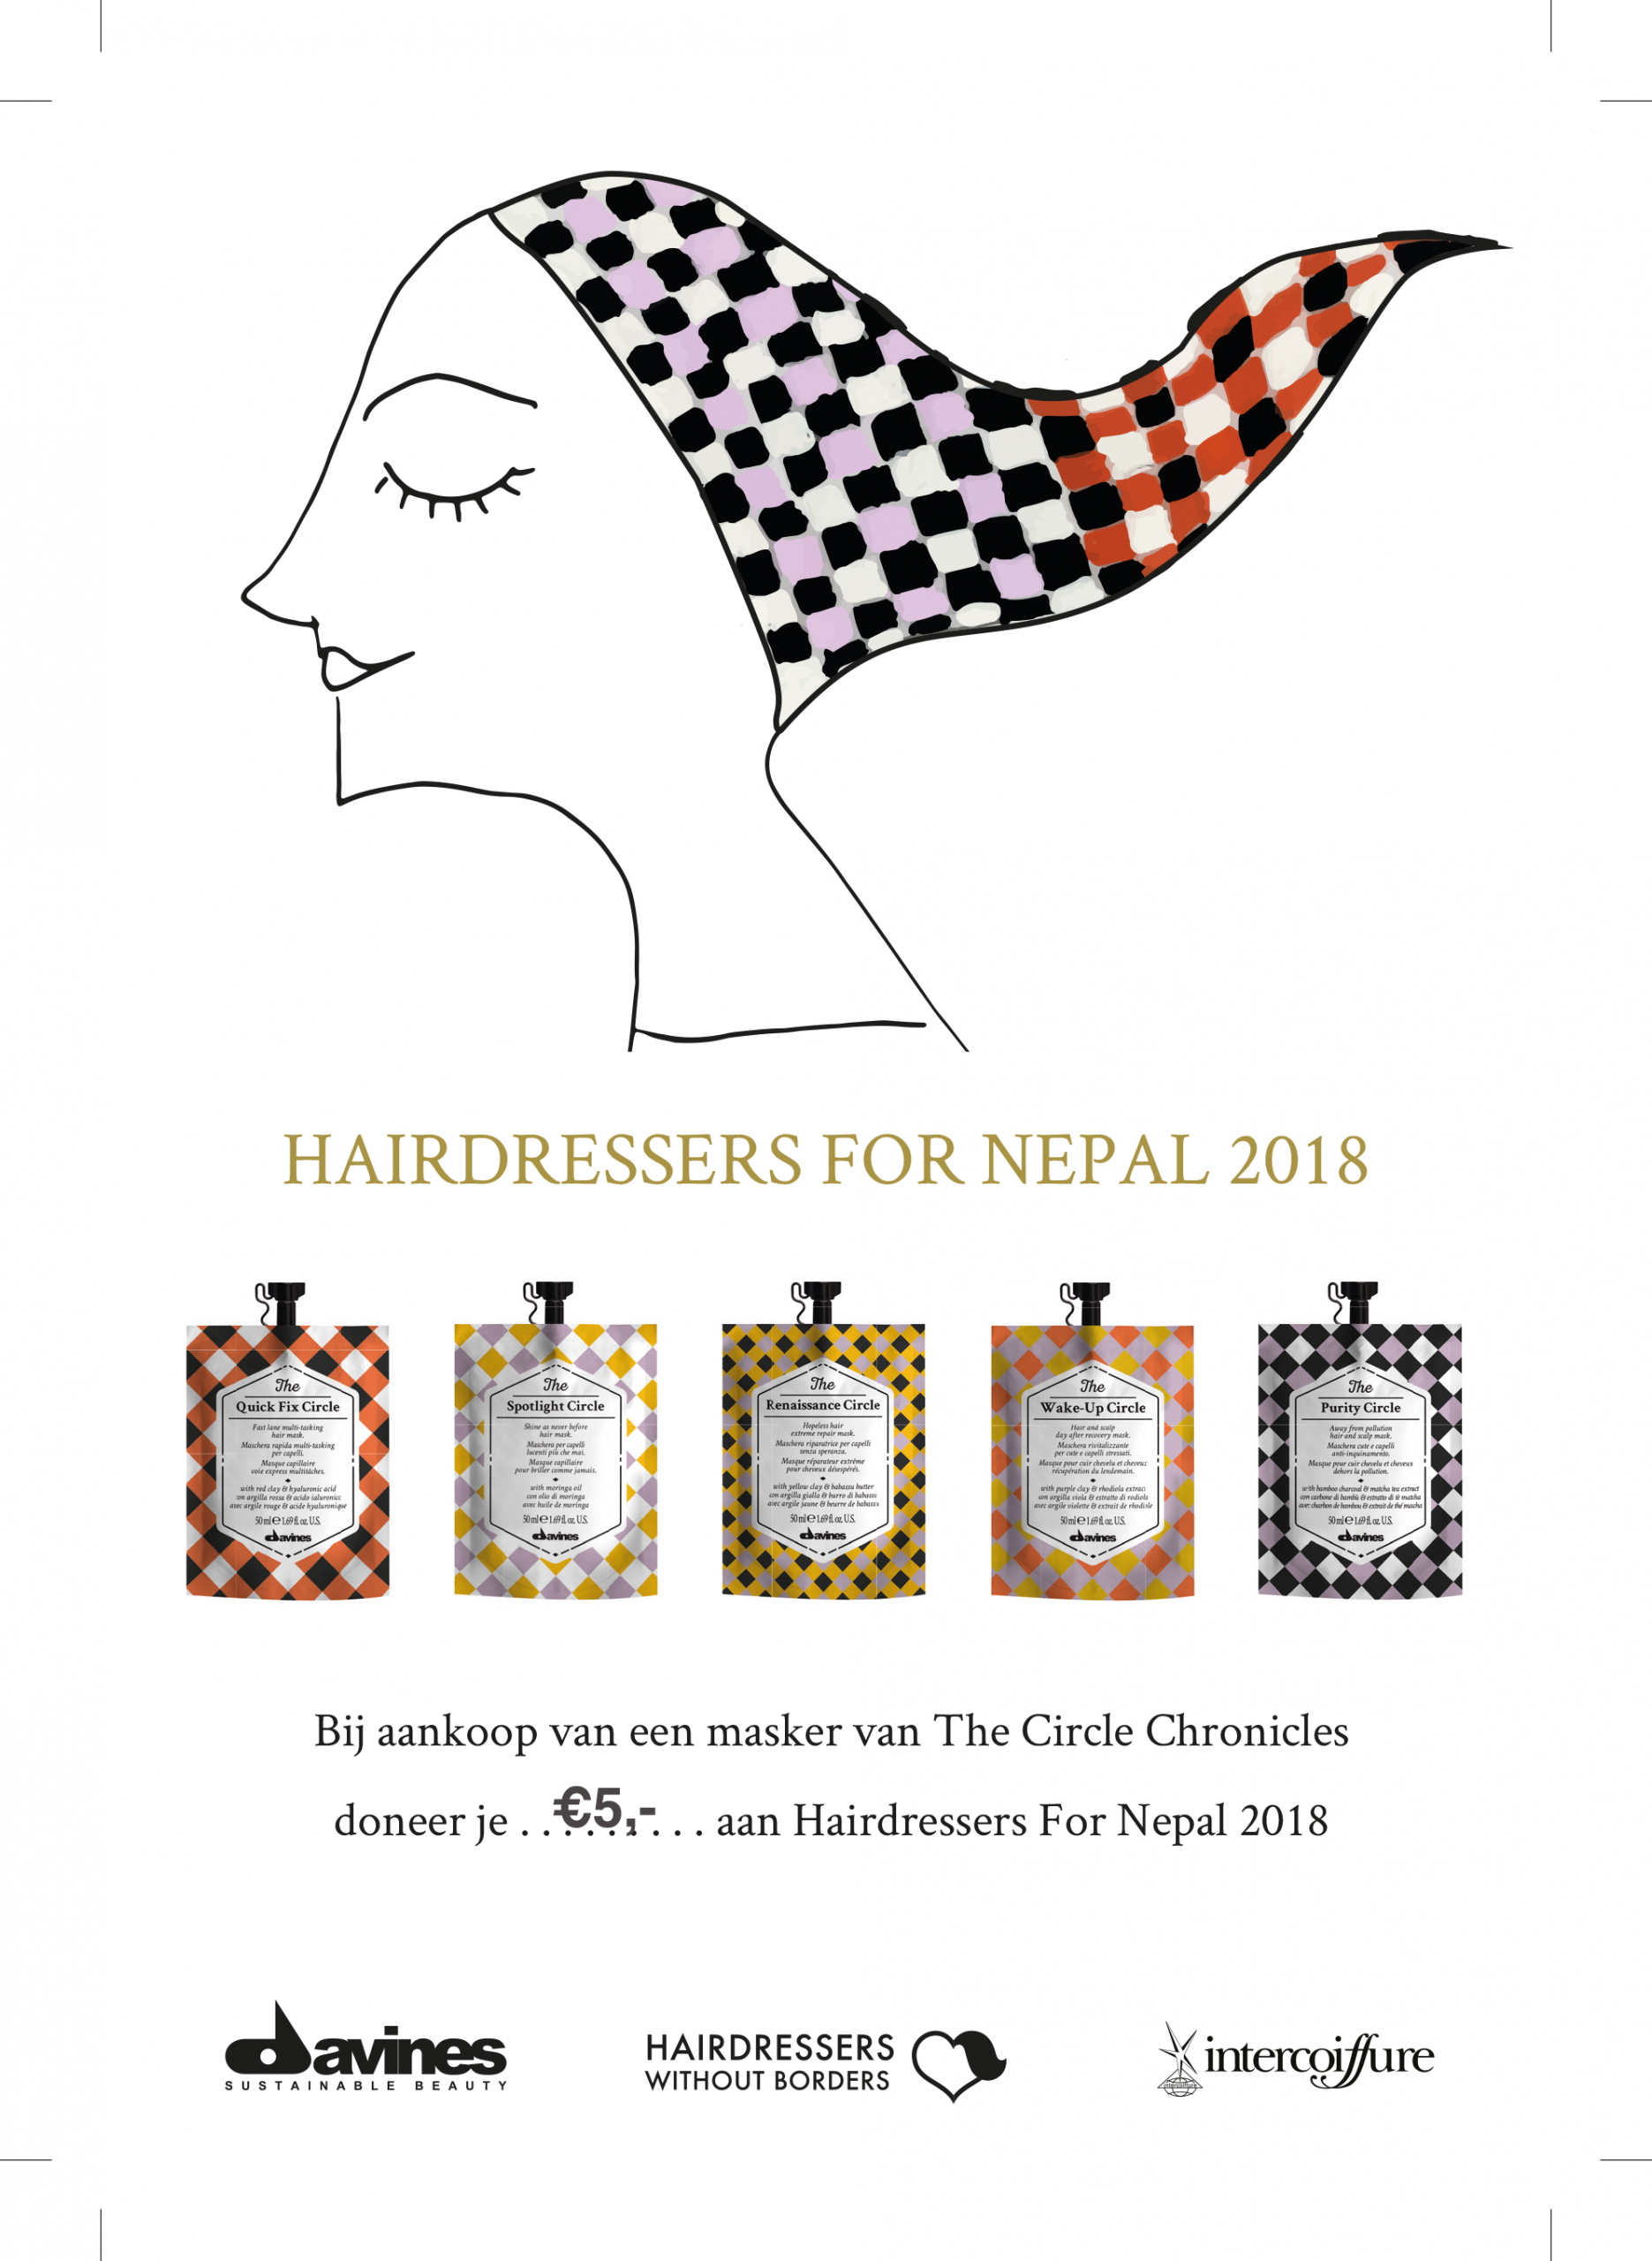 Hairdressers For Nepal 2018